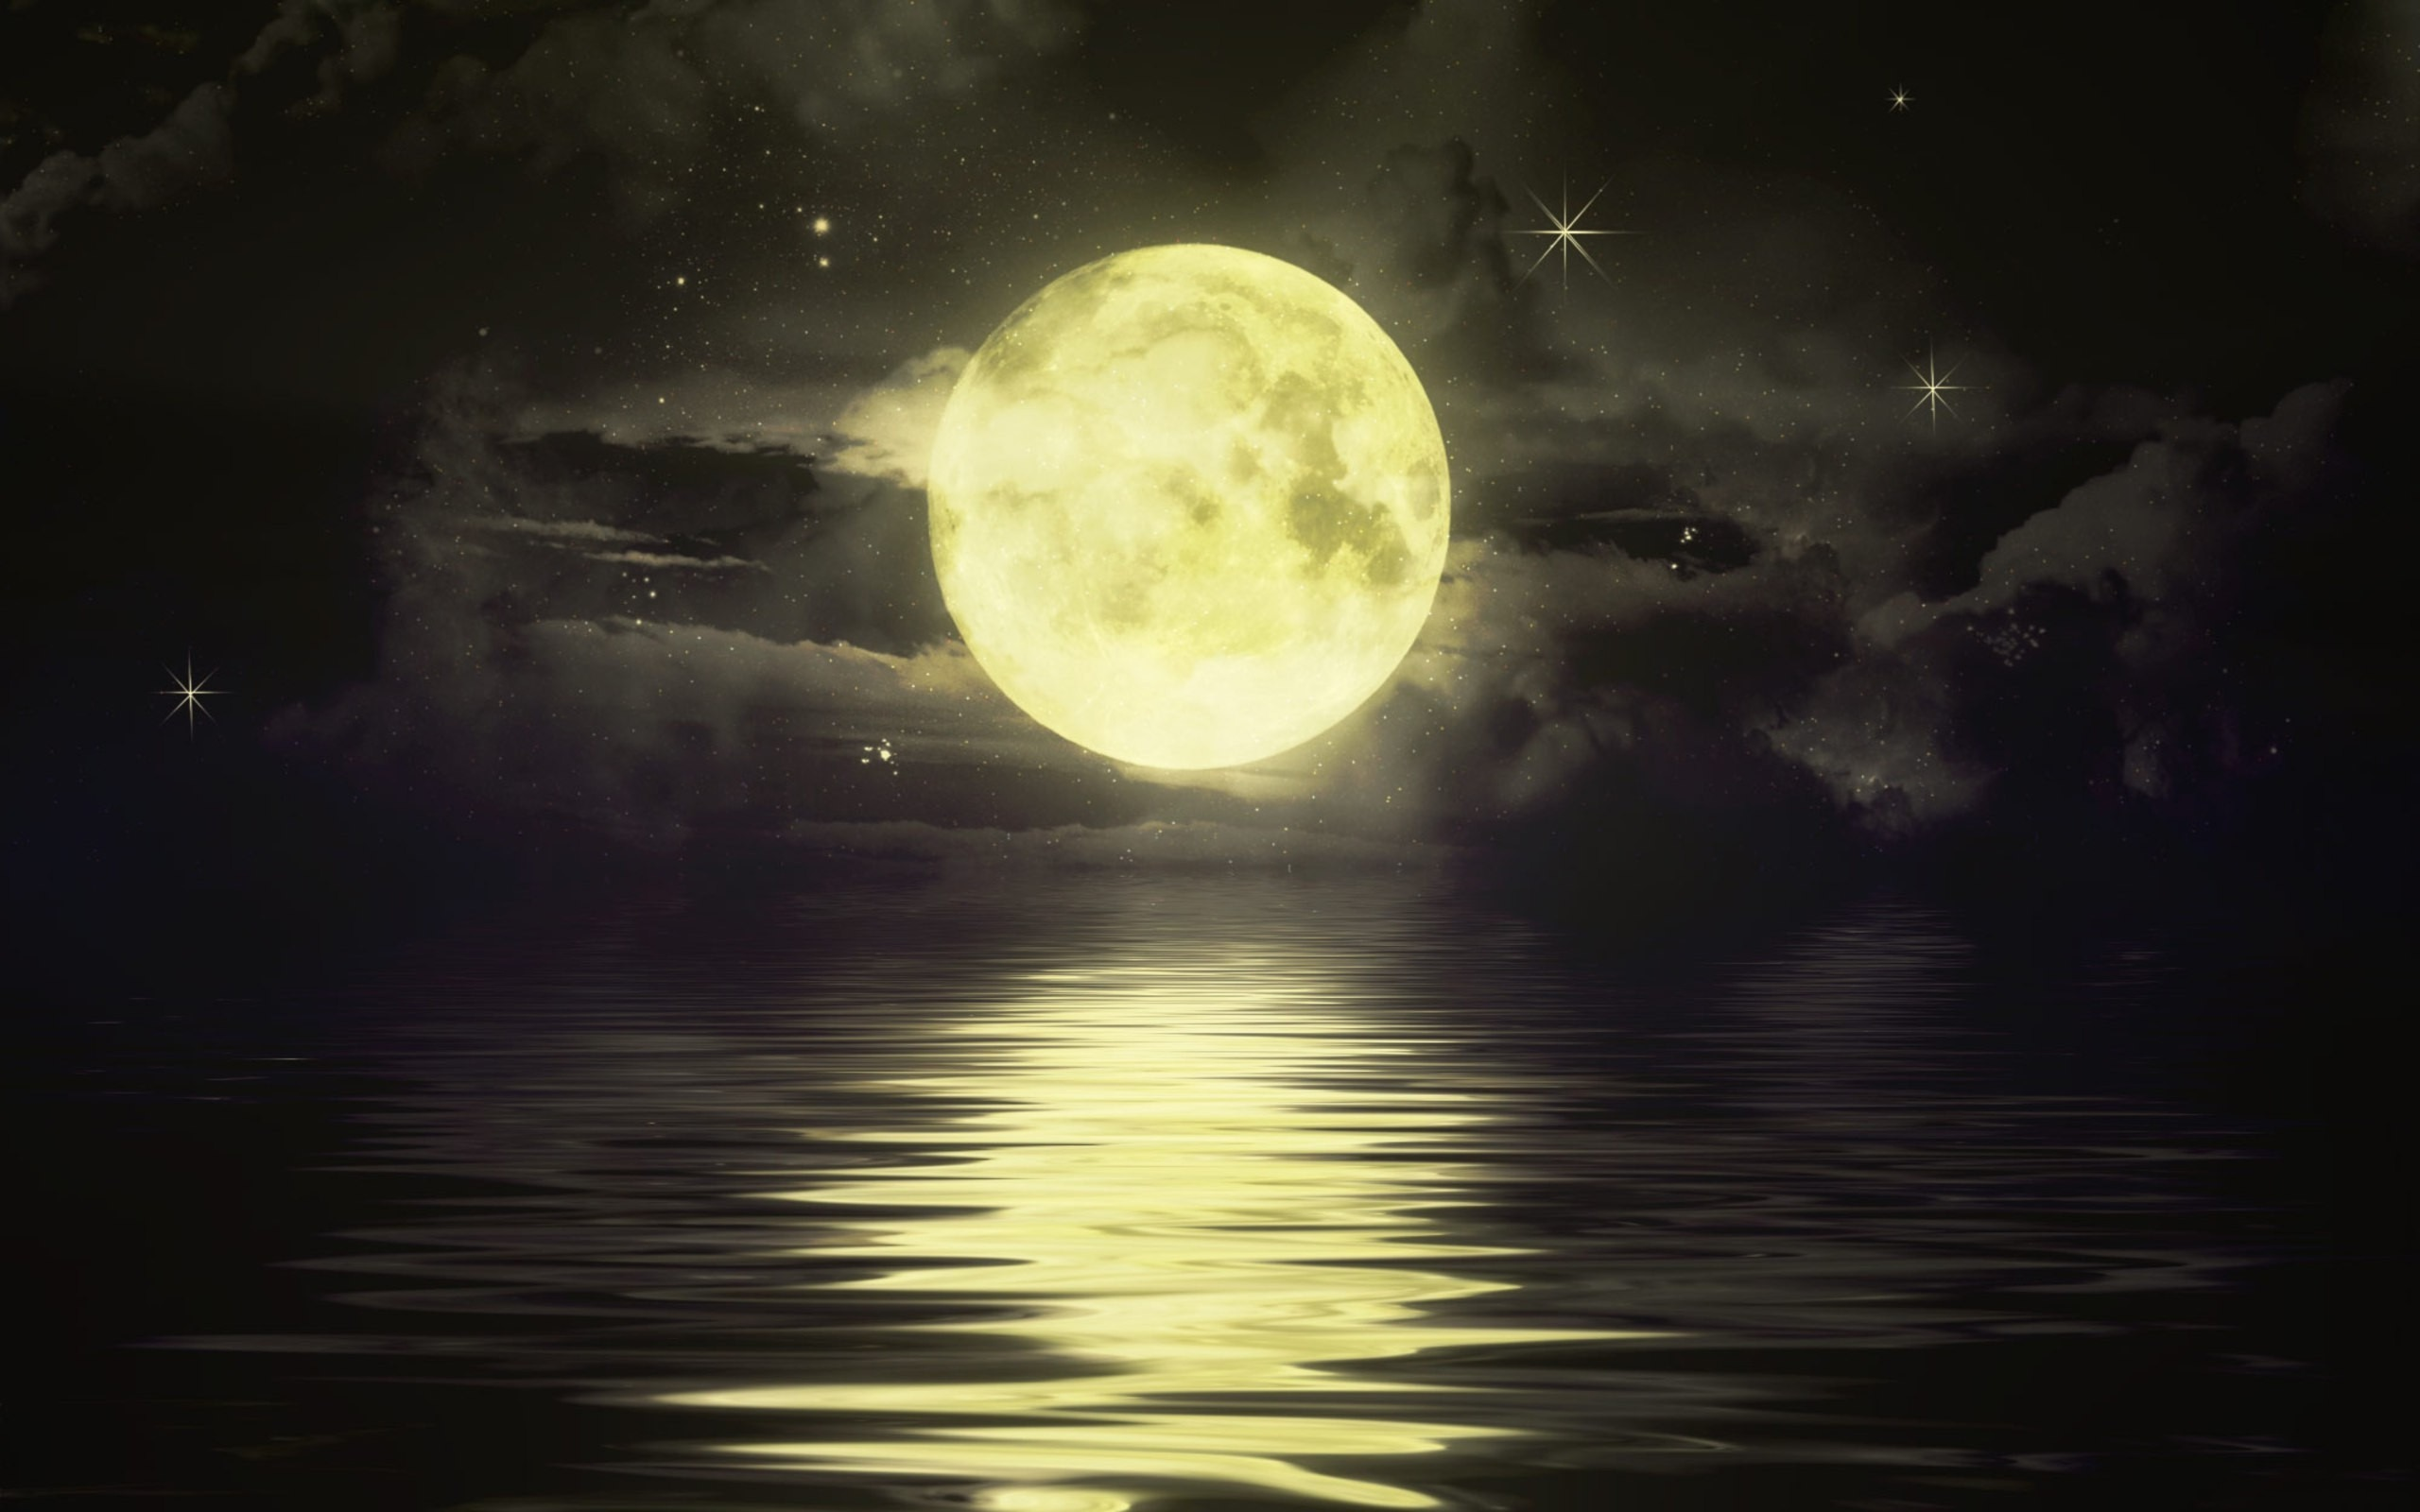 night sky wallpaper moon